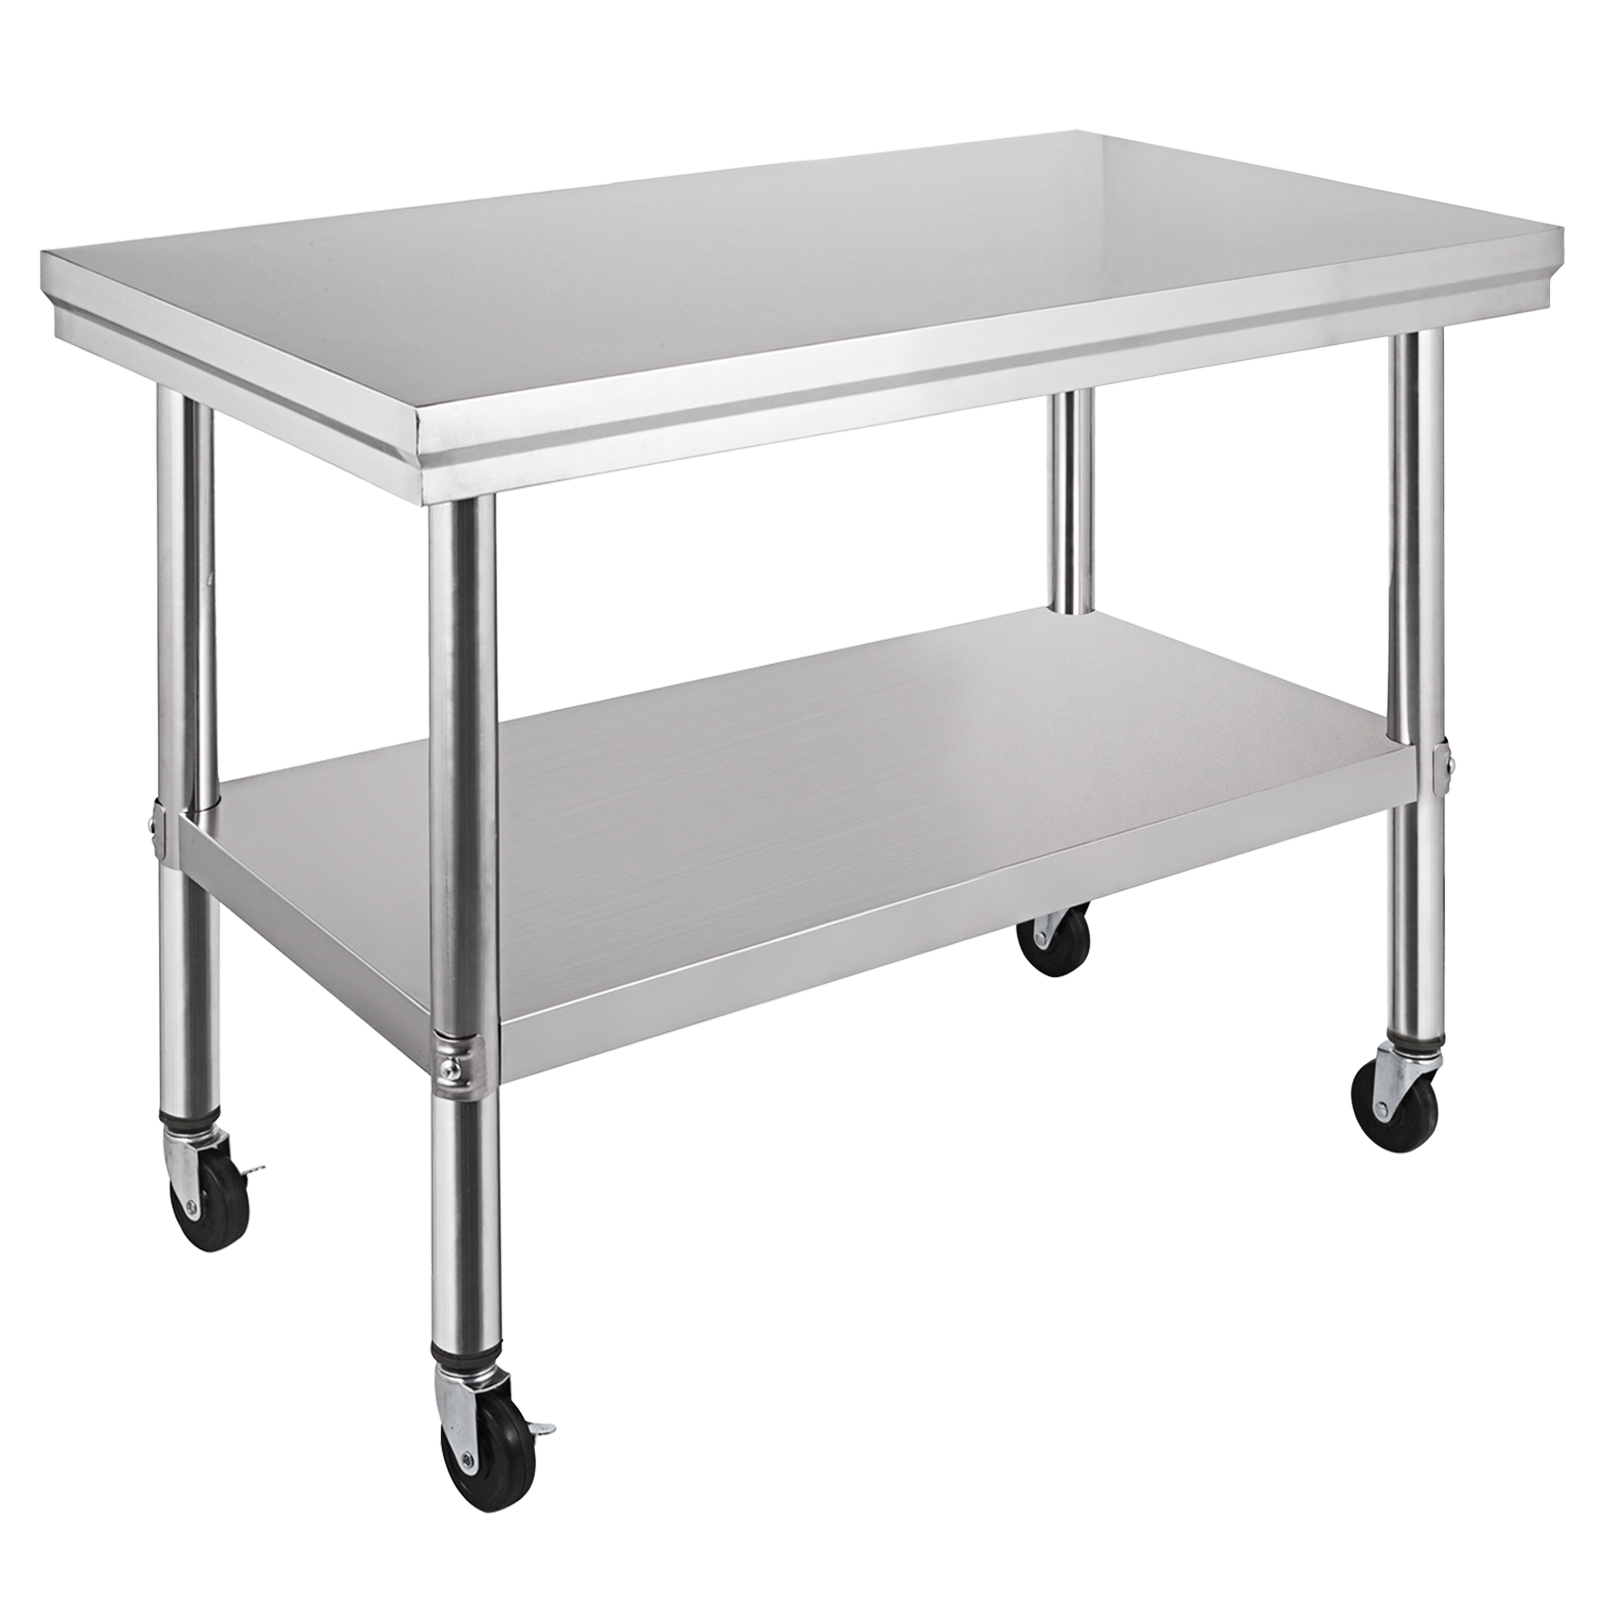 30 Quot X24 Quot Stainless Steel Work Table With 4 Casters Shelving